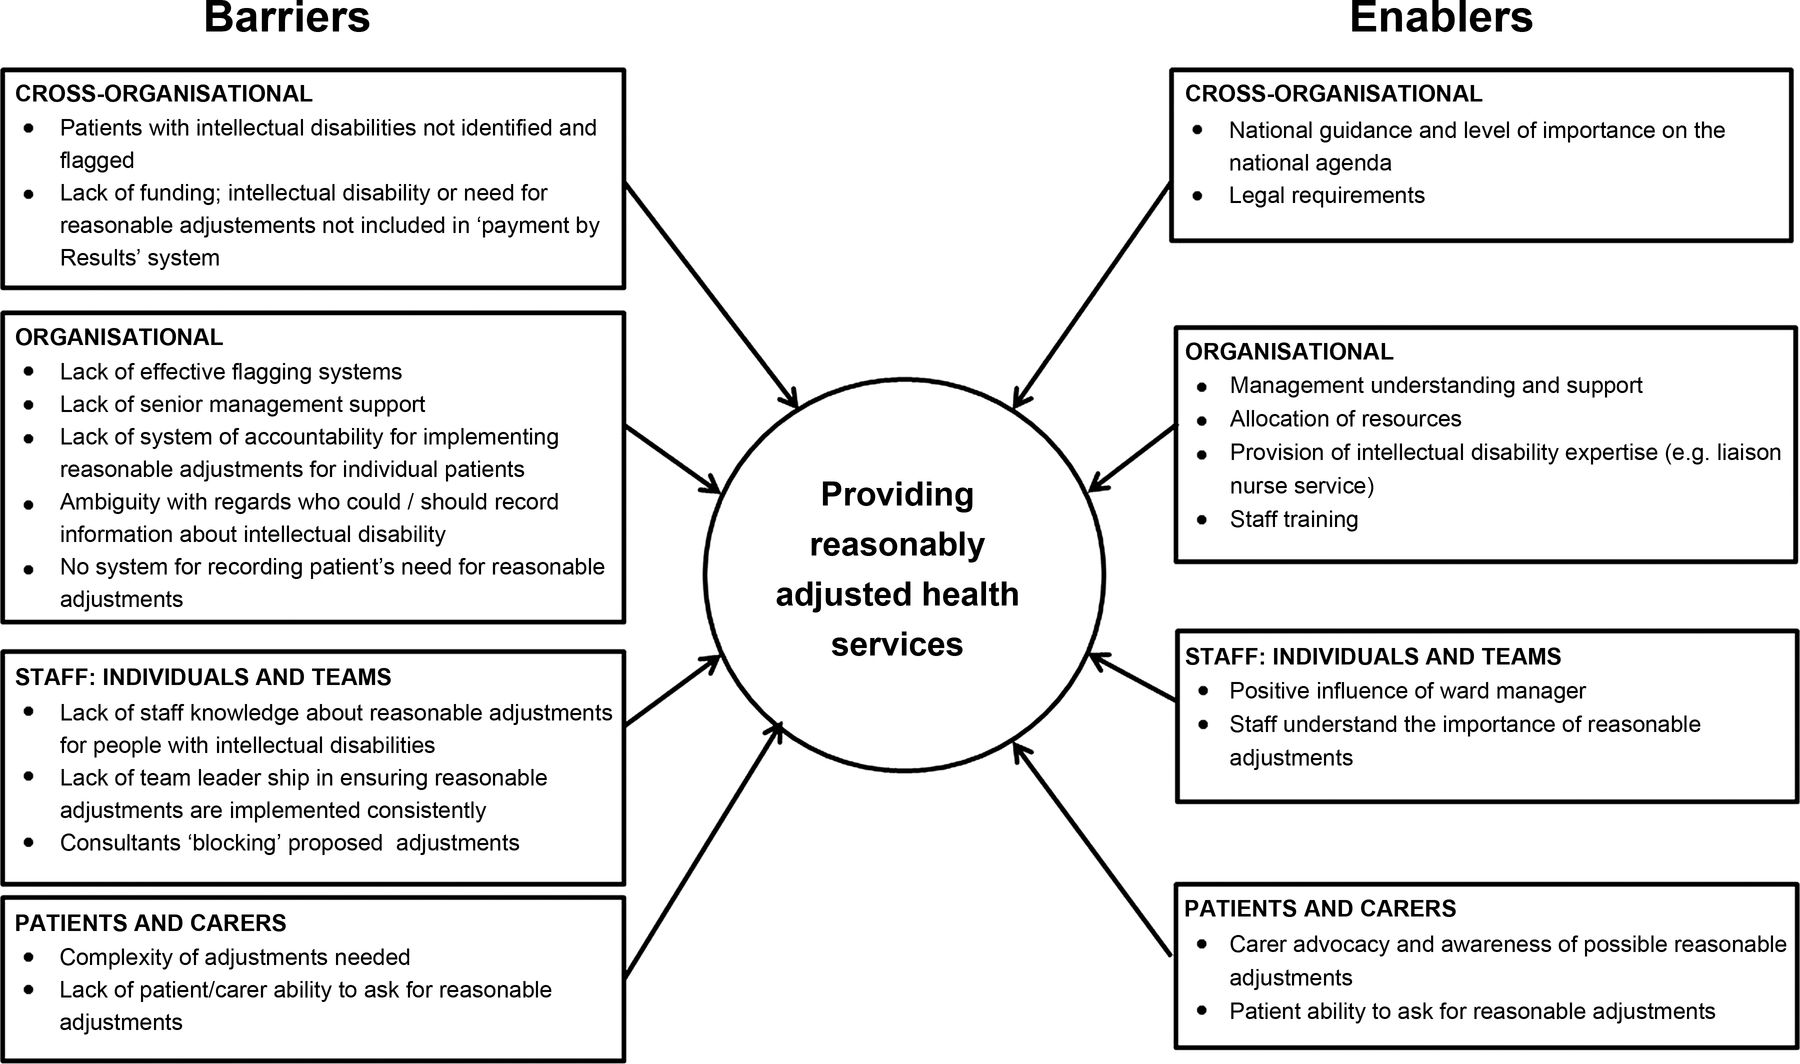 The Barriers To And Enablers Of Providing Reasonably